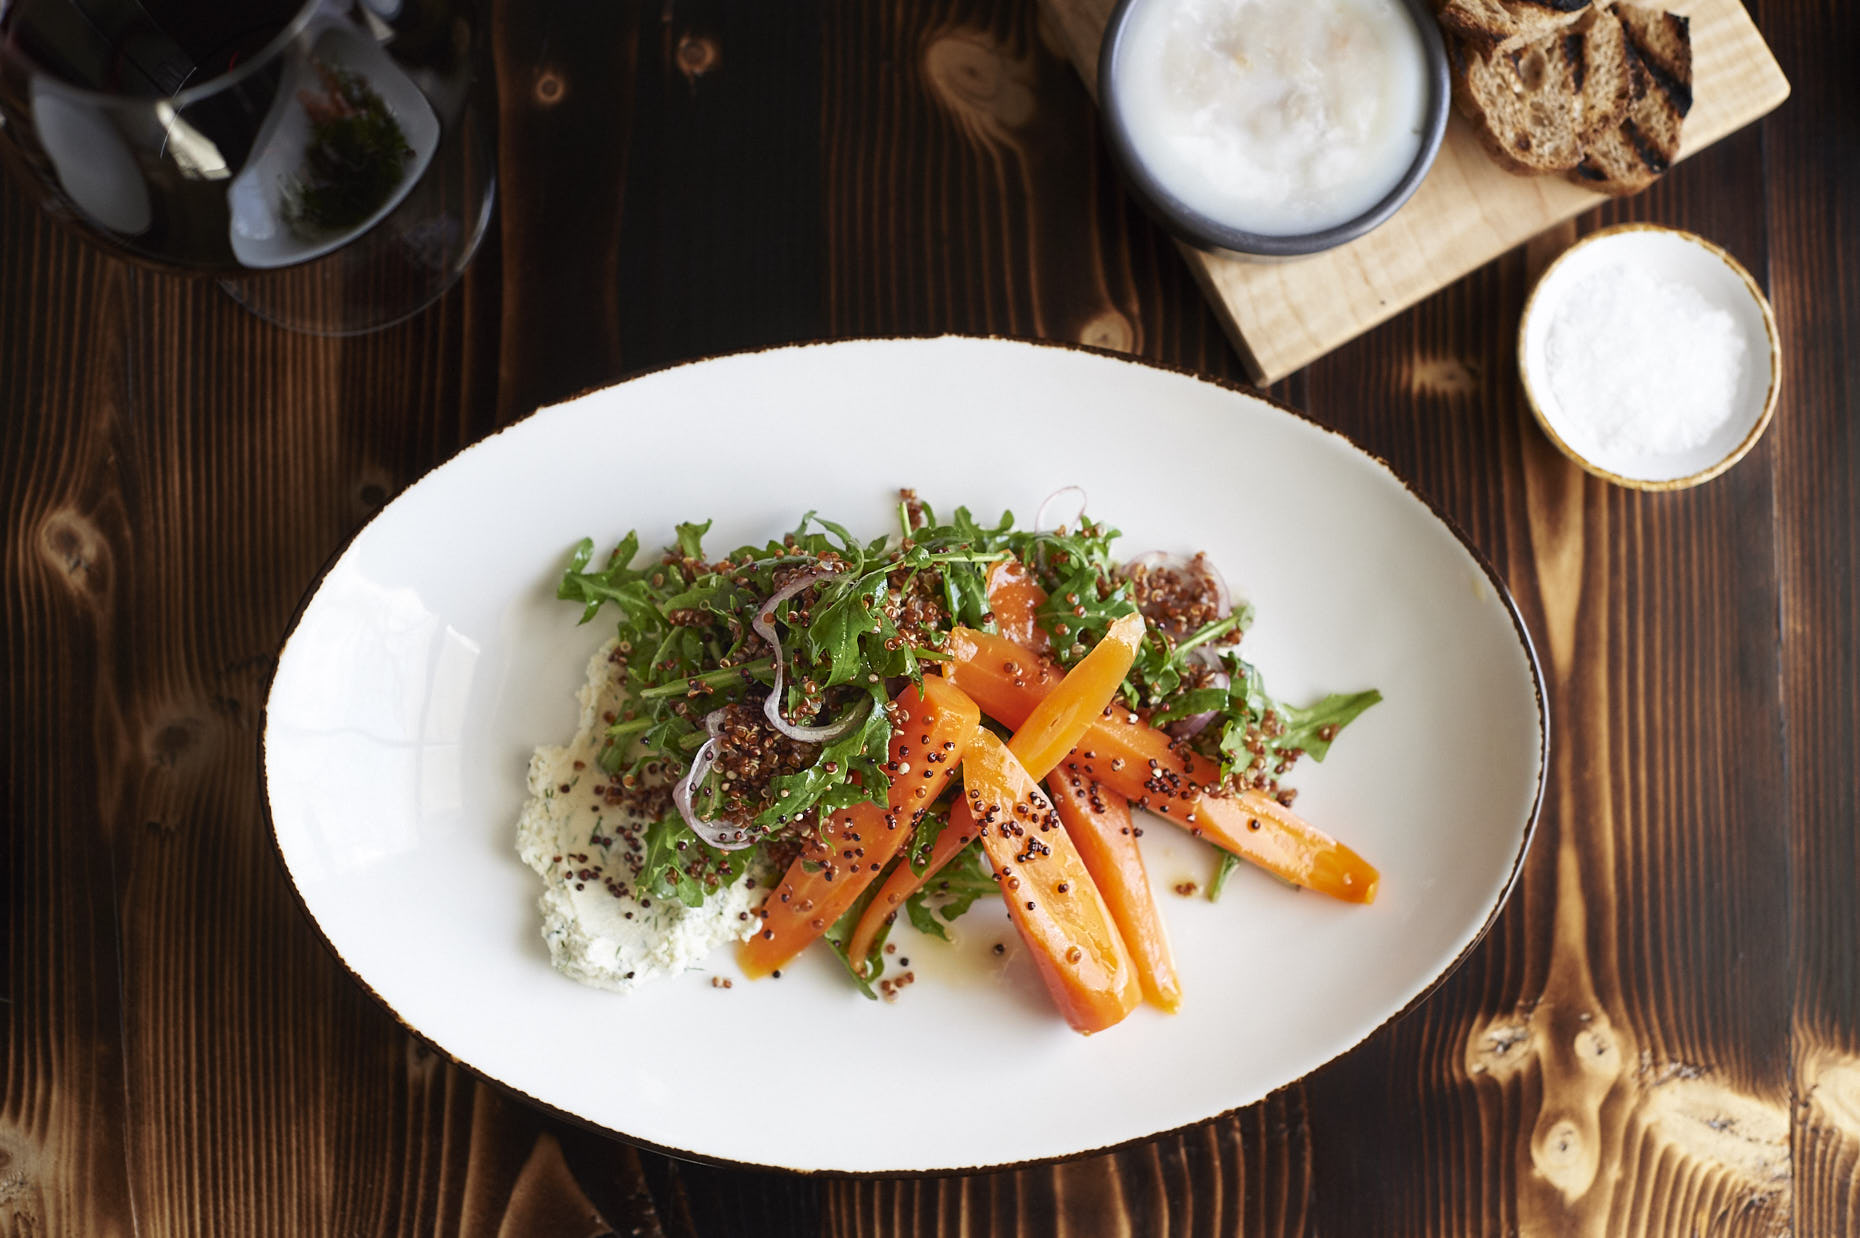 carrot-salad-jennifer-may-photographer-food-nyc-hudson-valley